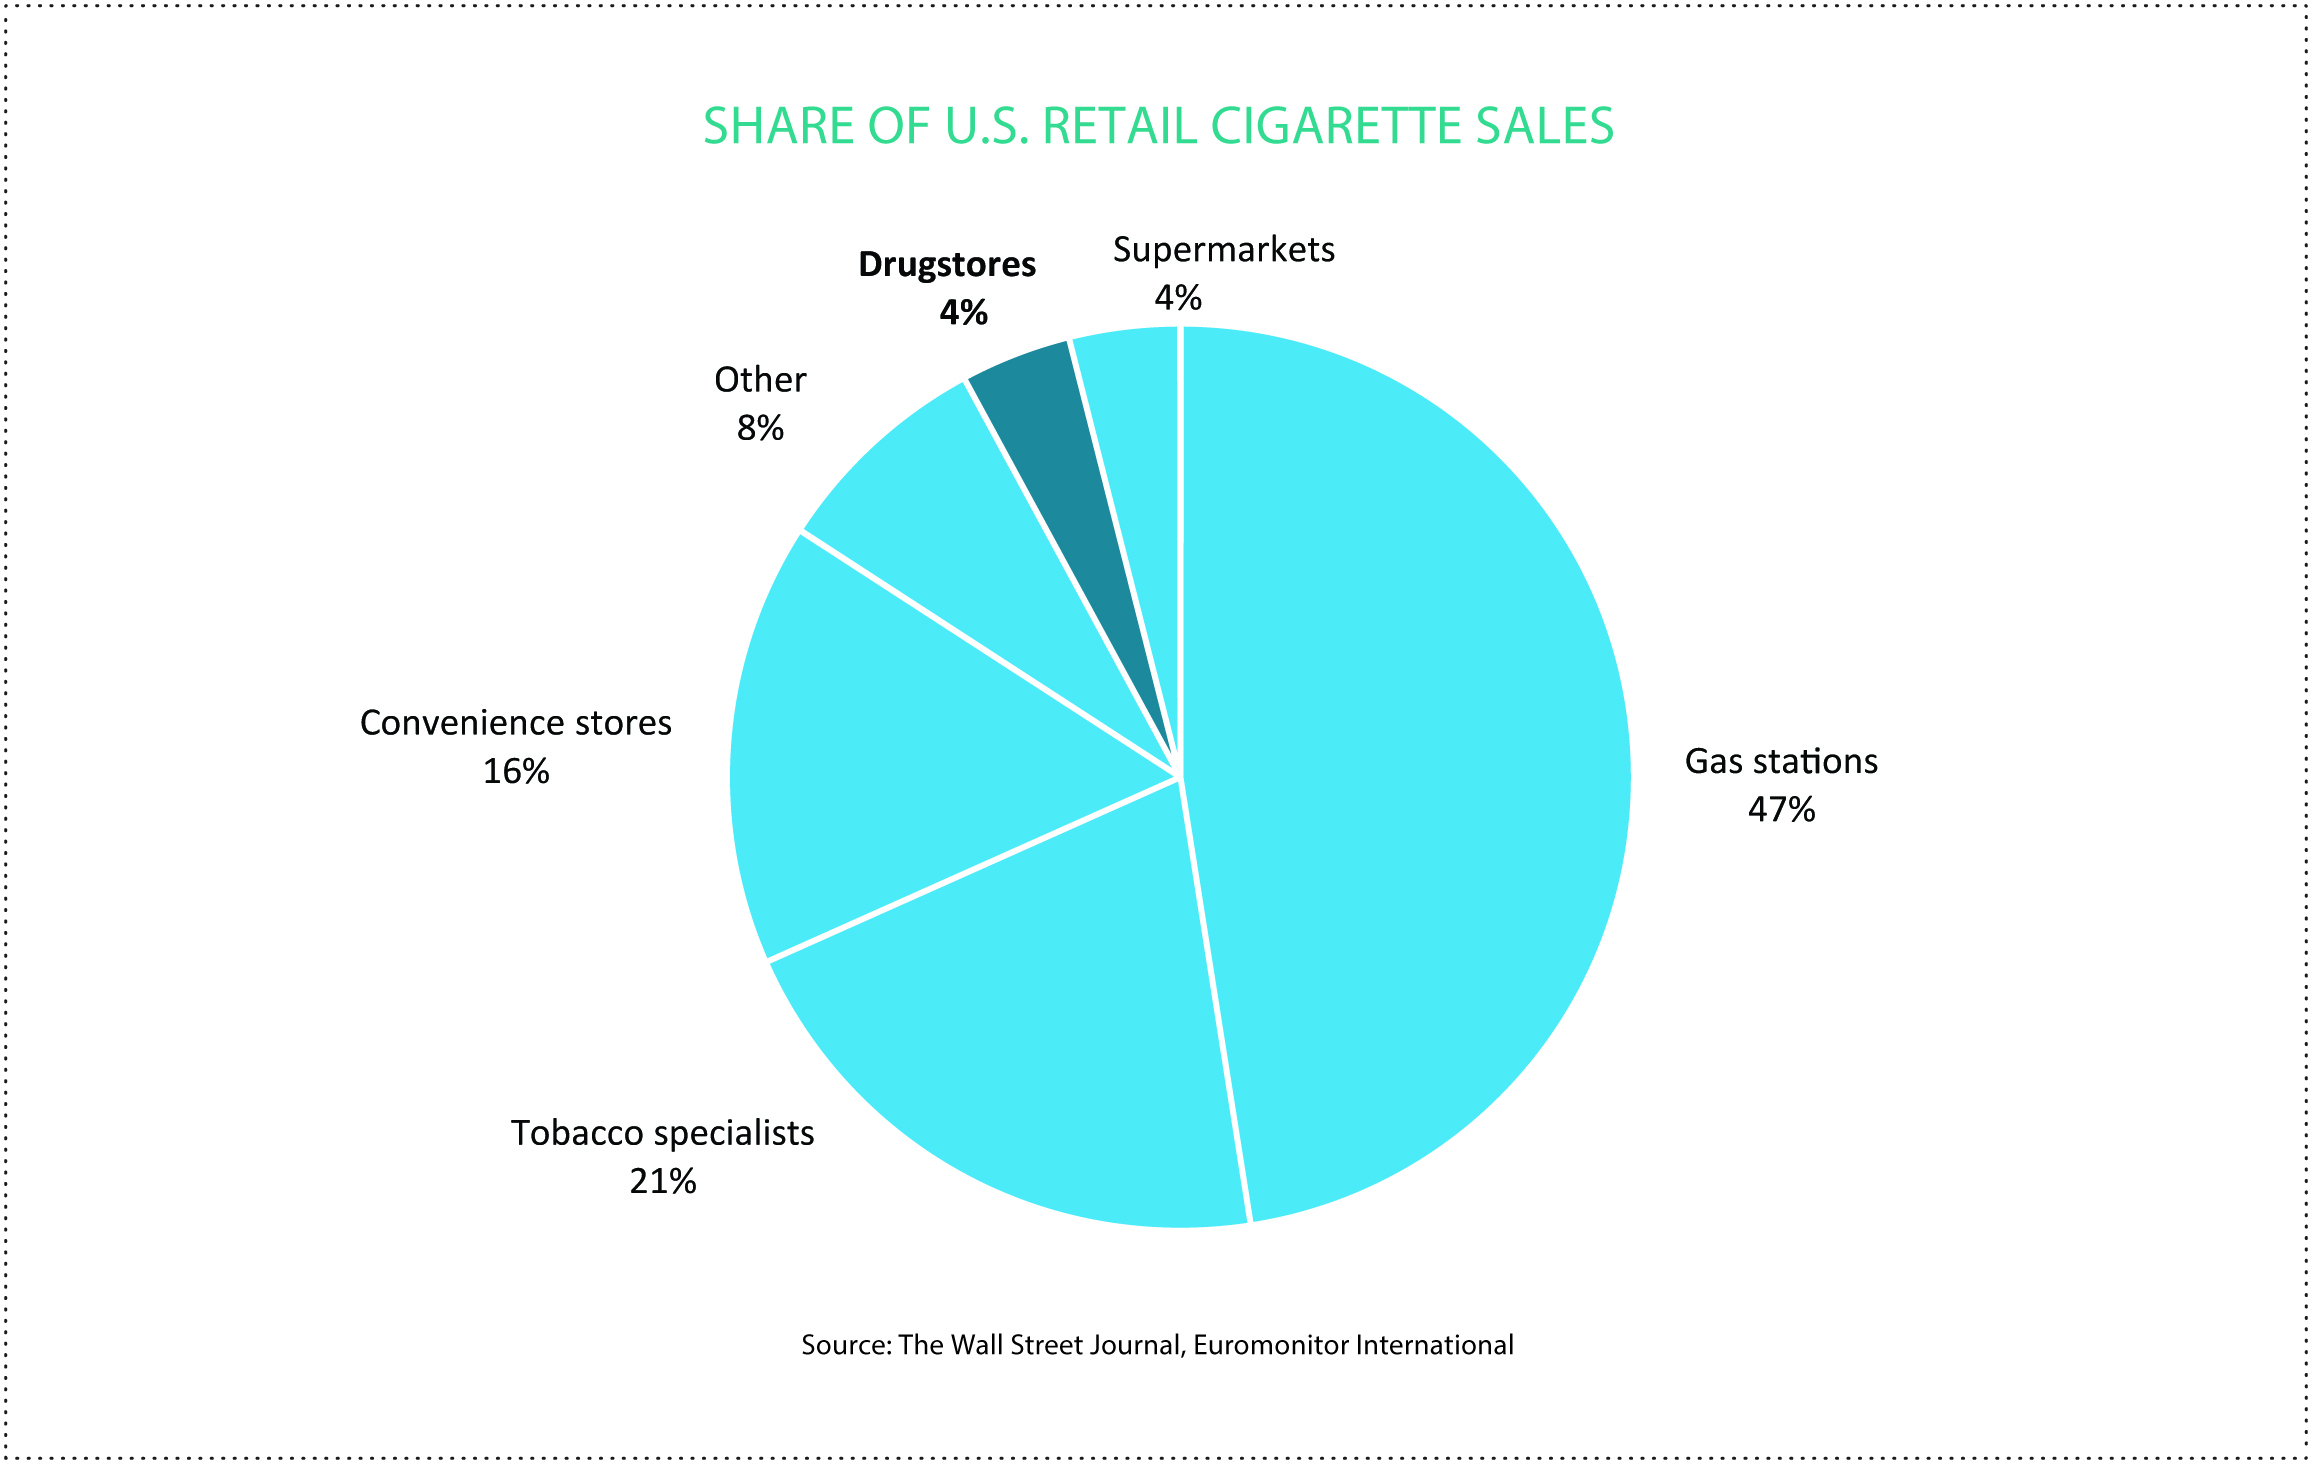 Cvs Gave Up Cigarette Sales To Stay True Health Focused Mission E Block Diagram Surprising Benefits